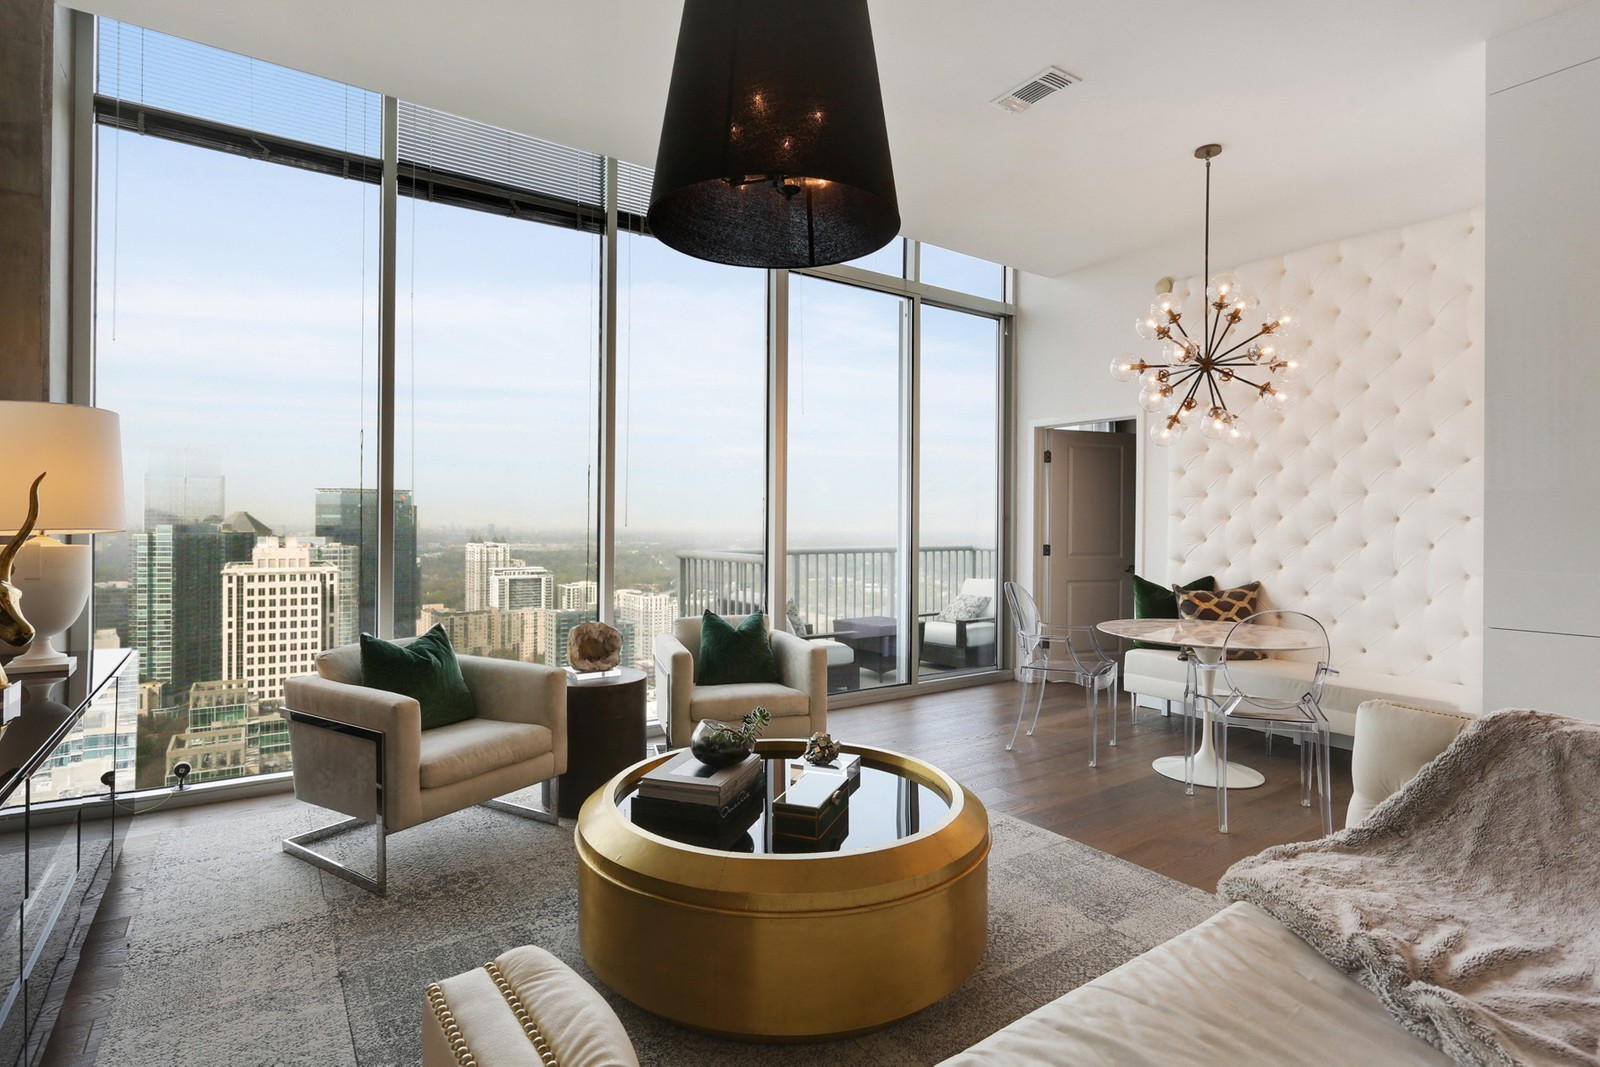 A huge living room of a condo with white walls overlooking a large city.